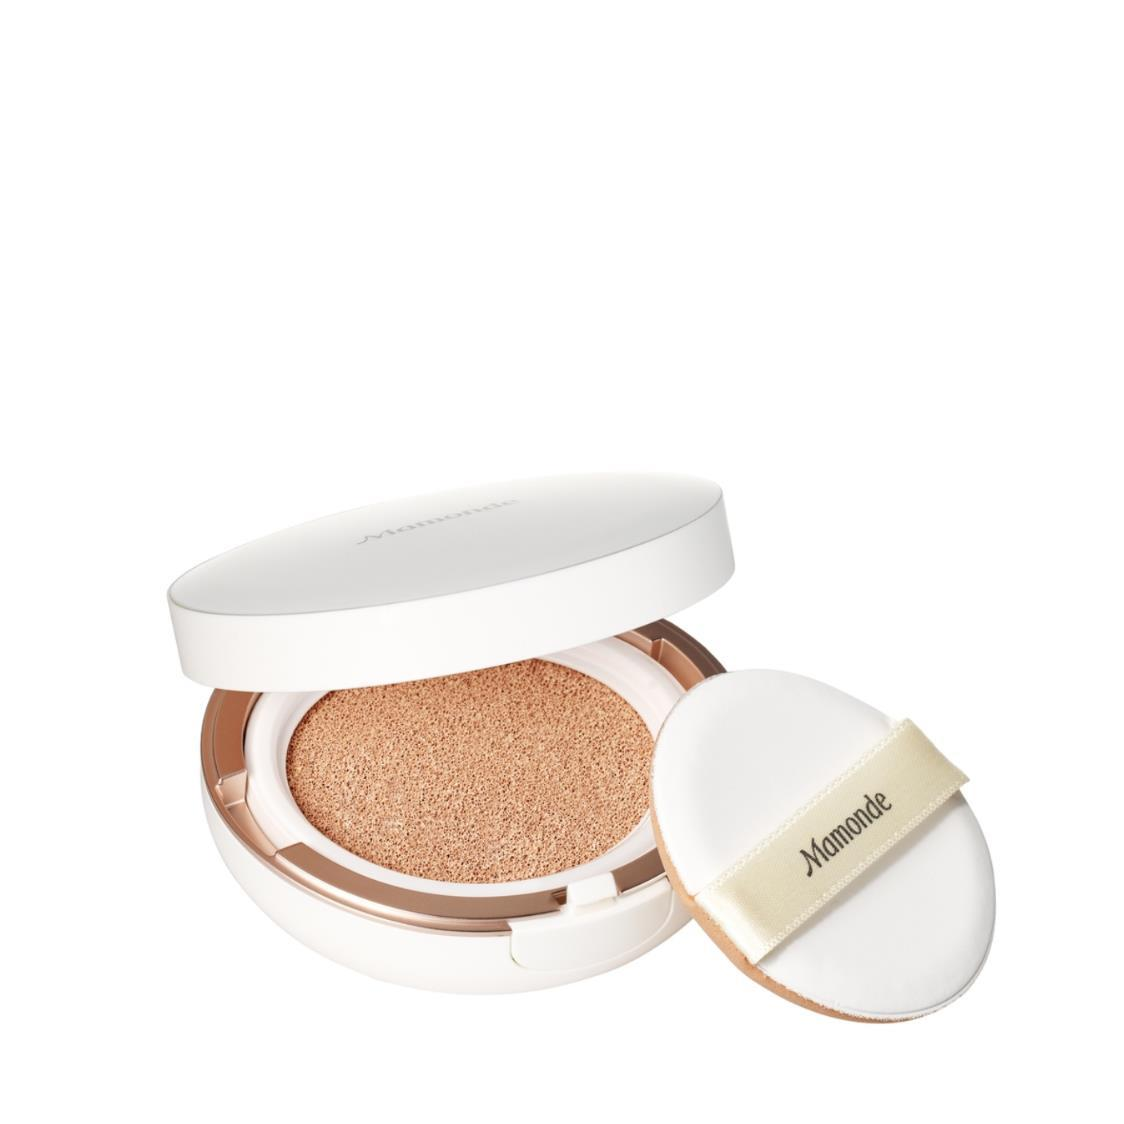 Brightening Cover Powder Cushion 15g